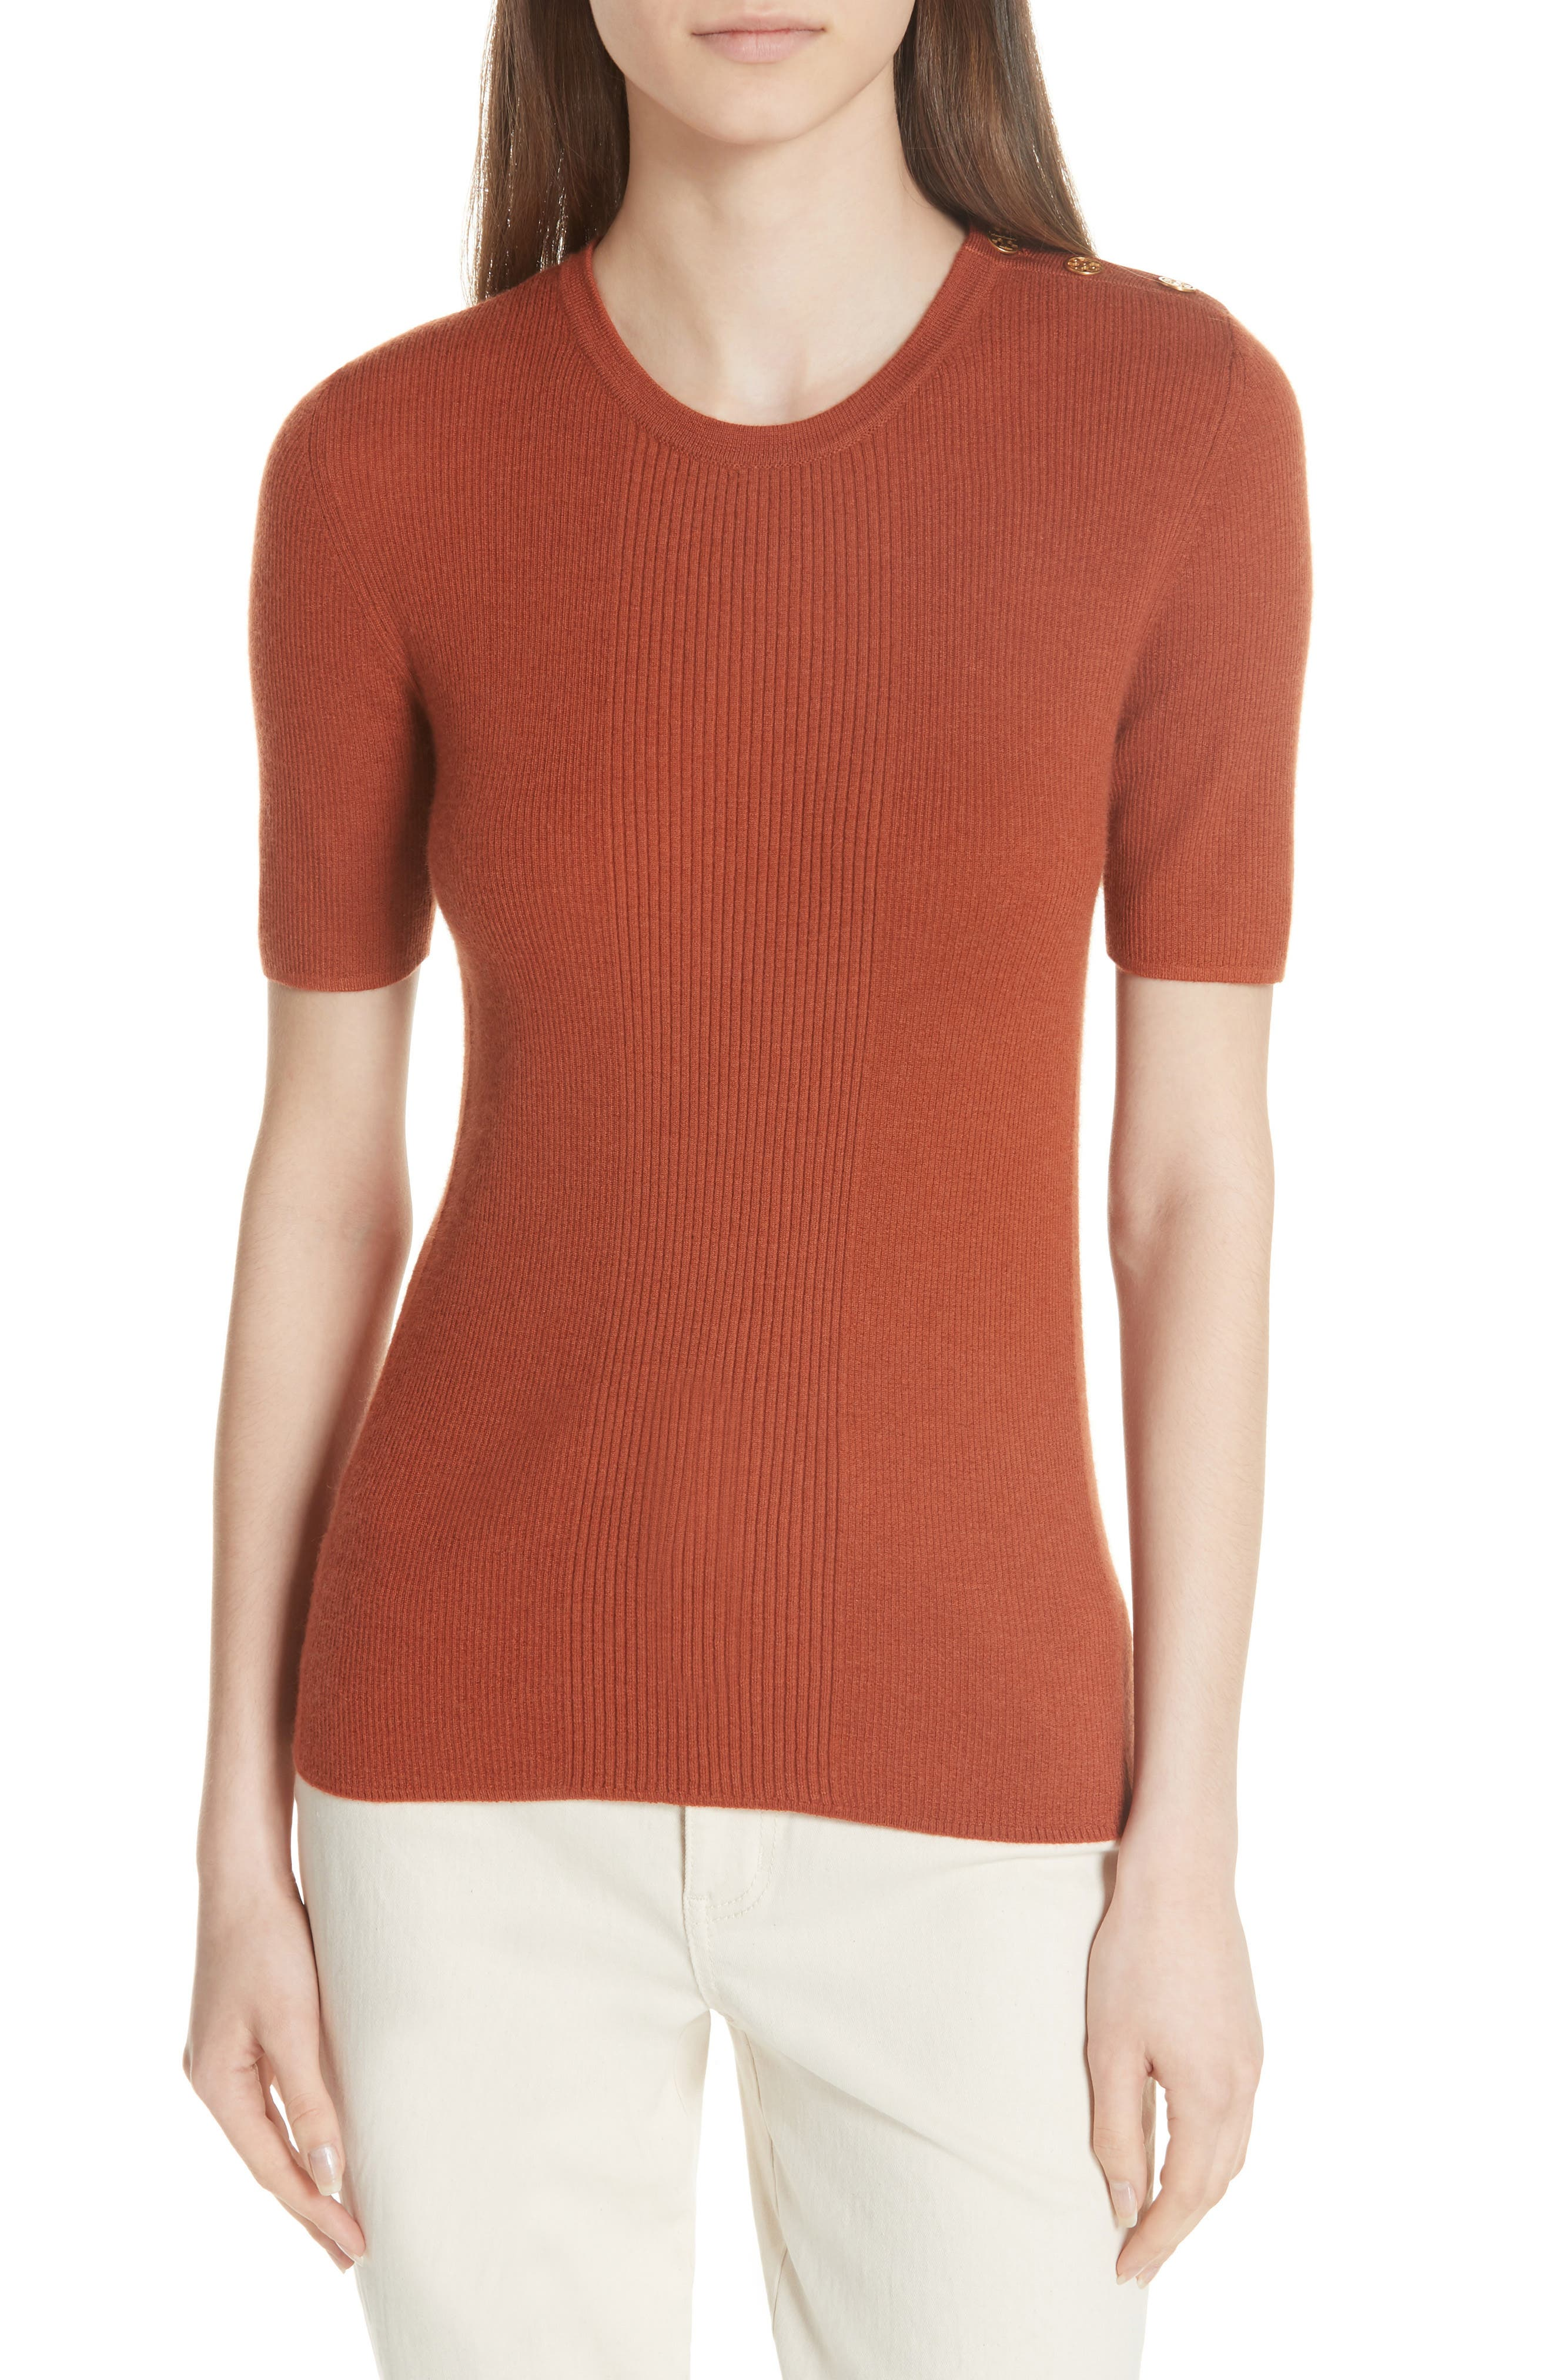 Taylor Ribbed Cashmere Sweater,                             Main thumbnail 1, color,                             217